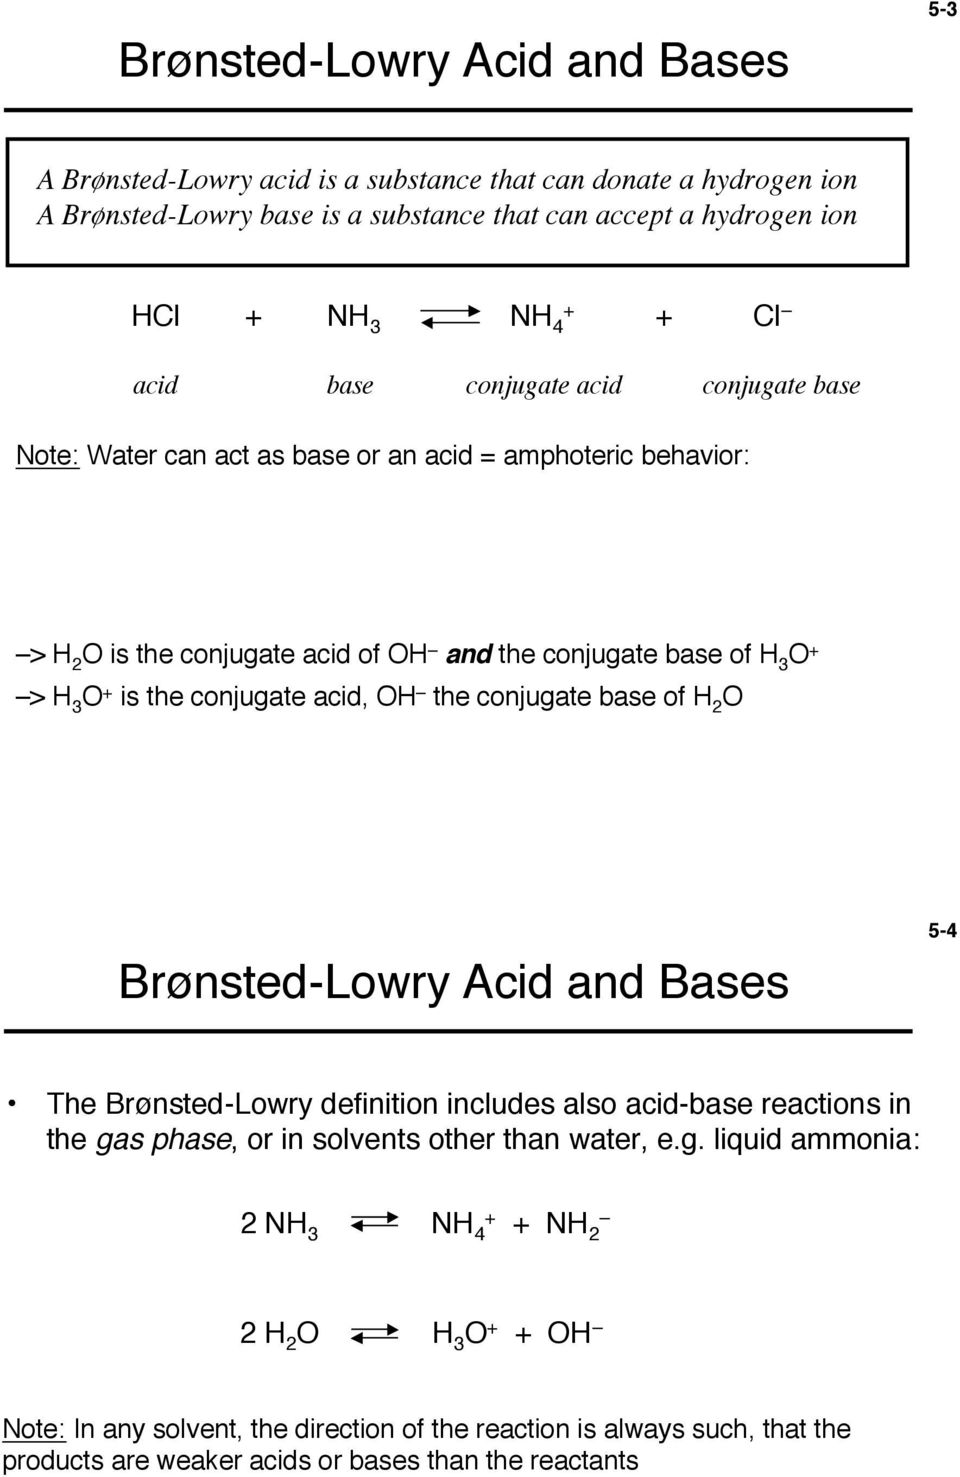 conjugate acid, OH the conjugate base of H 2 O Brønsted-Lowry Acid and Bases 5-4 The Brønsted-Lowry definition includes also acid-base reactions in the gas phase, or in solvents other than